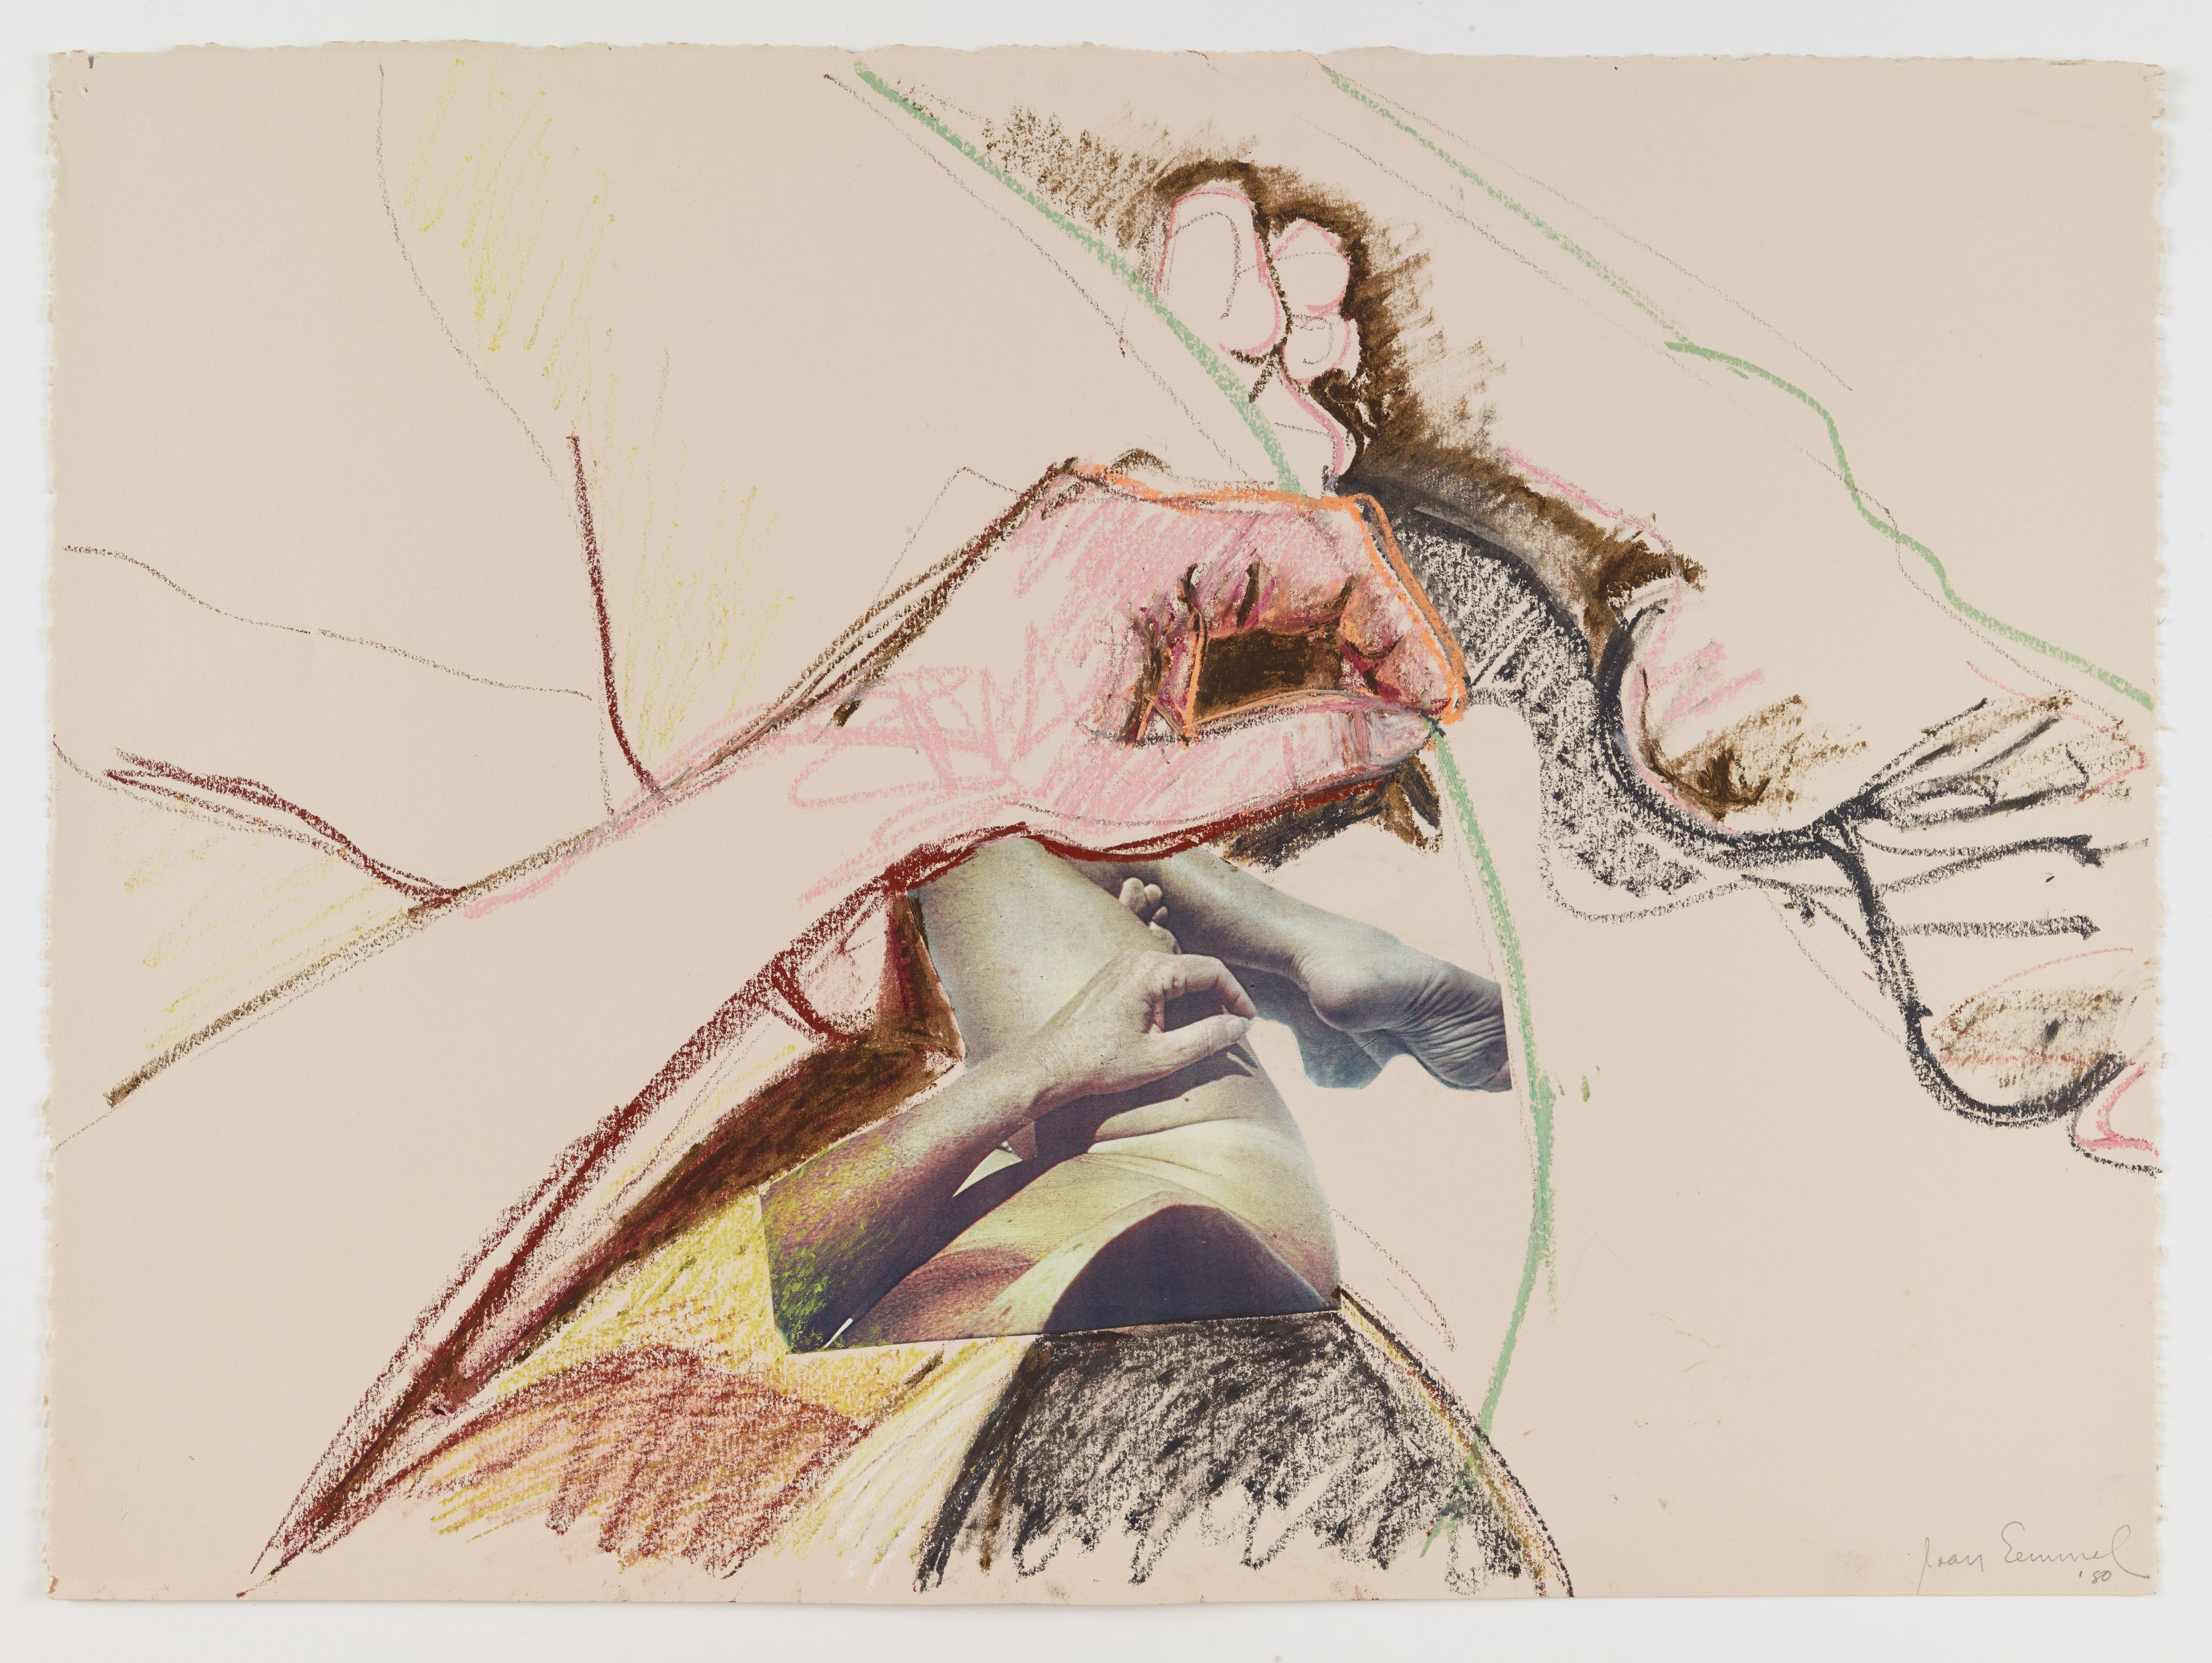 Untitled, 1980, Oil crayon and collage on paper